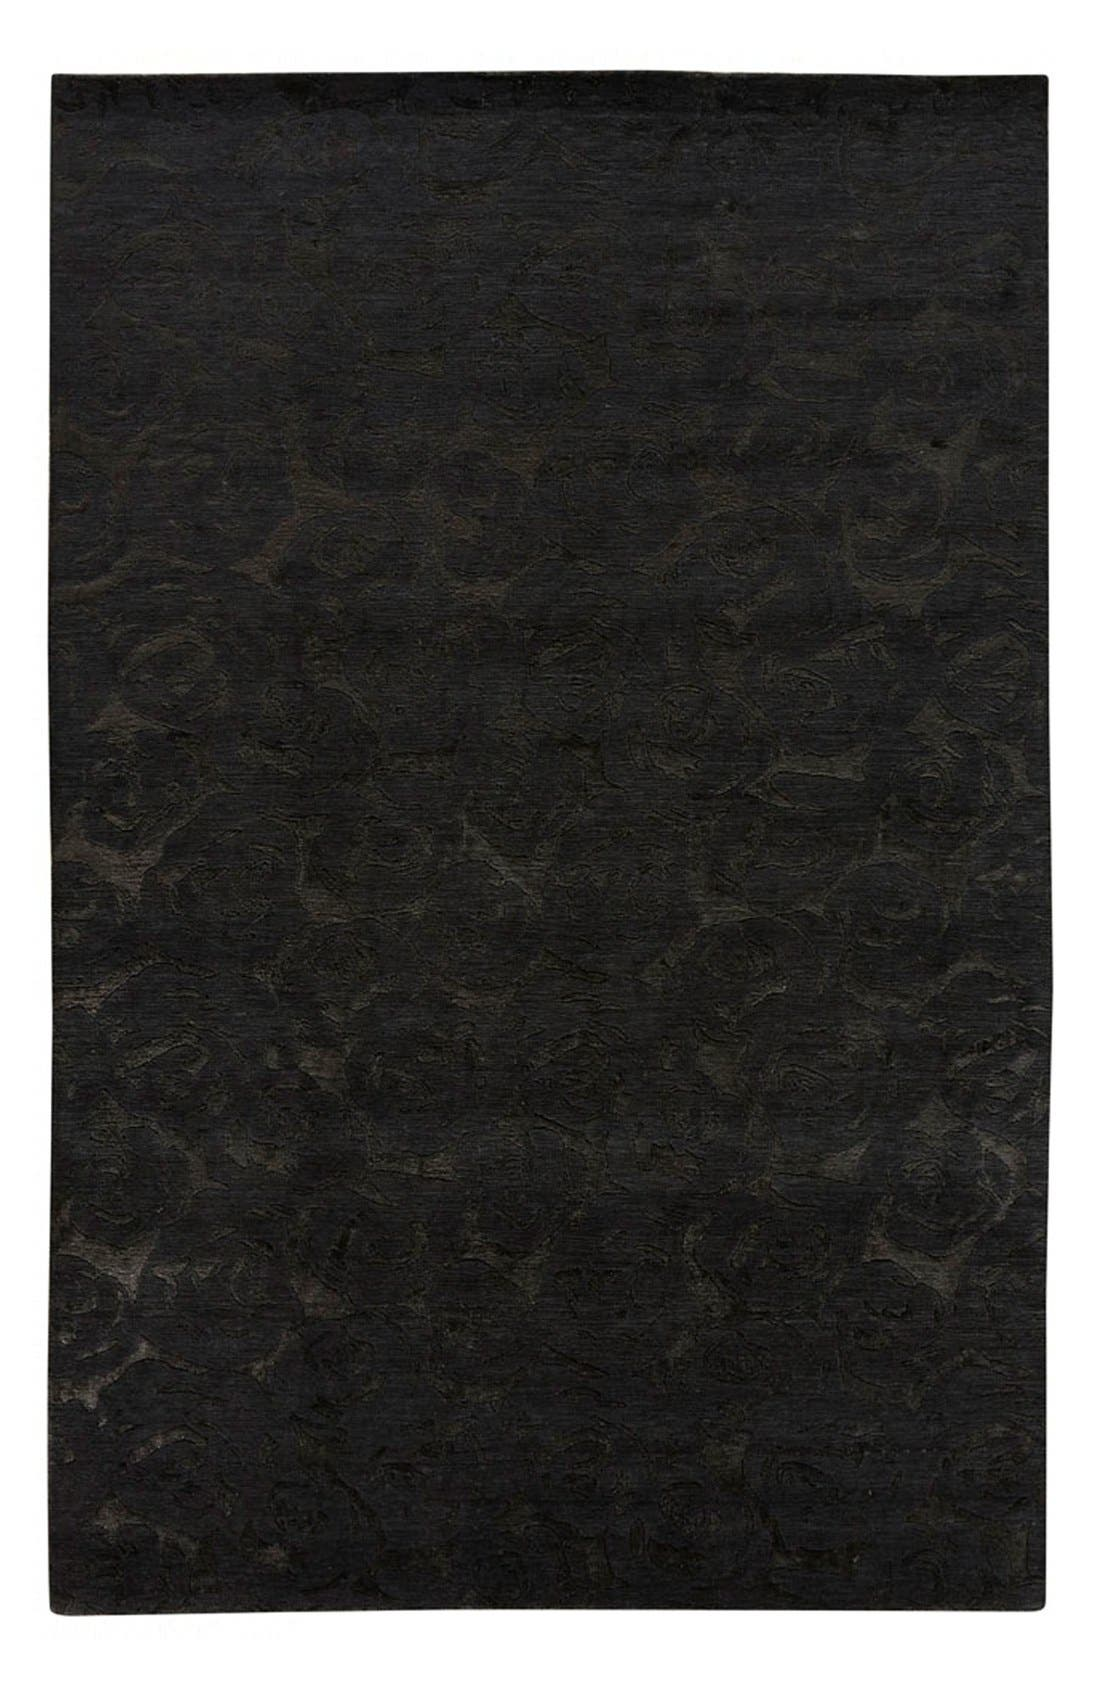 'noho' premium wool blend rug,                         Main,                         color, Black